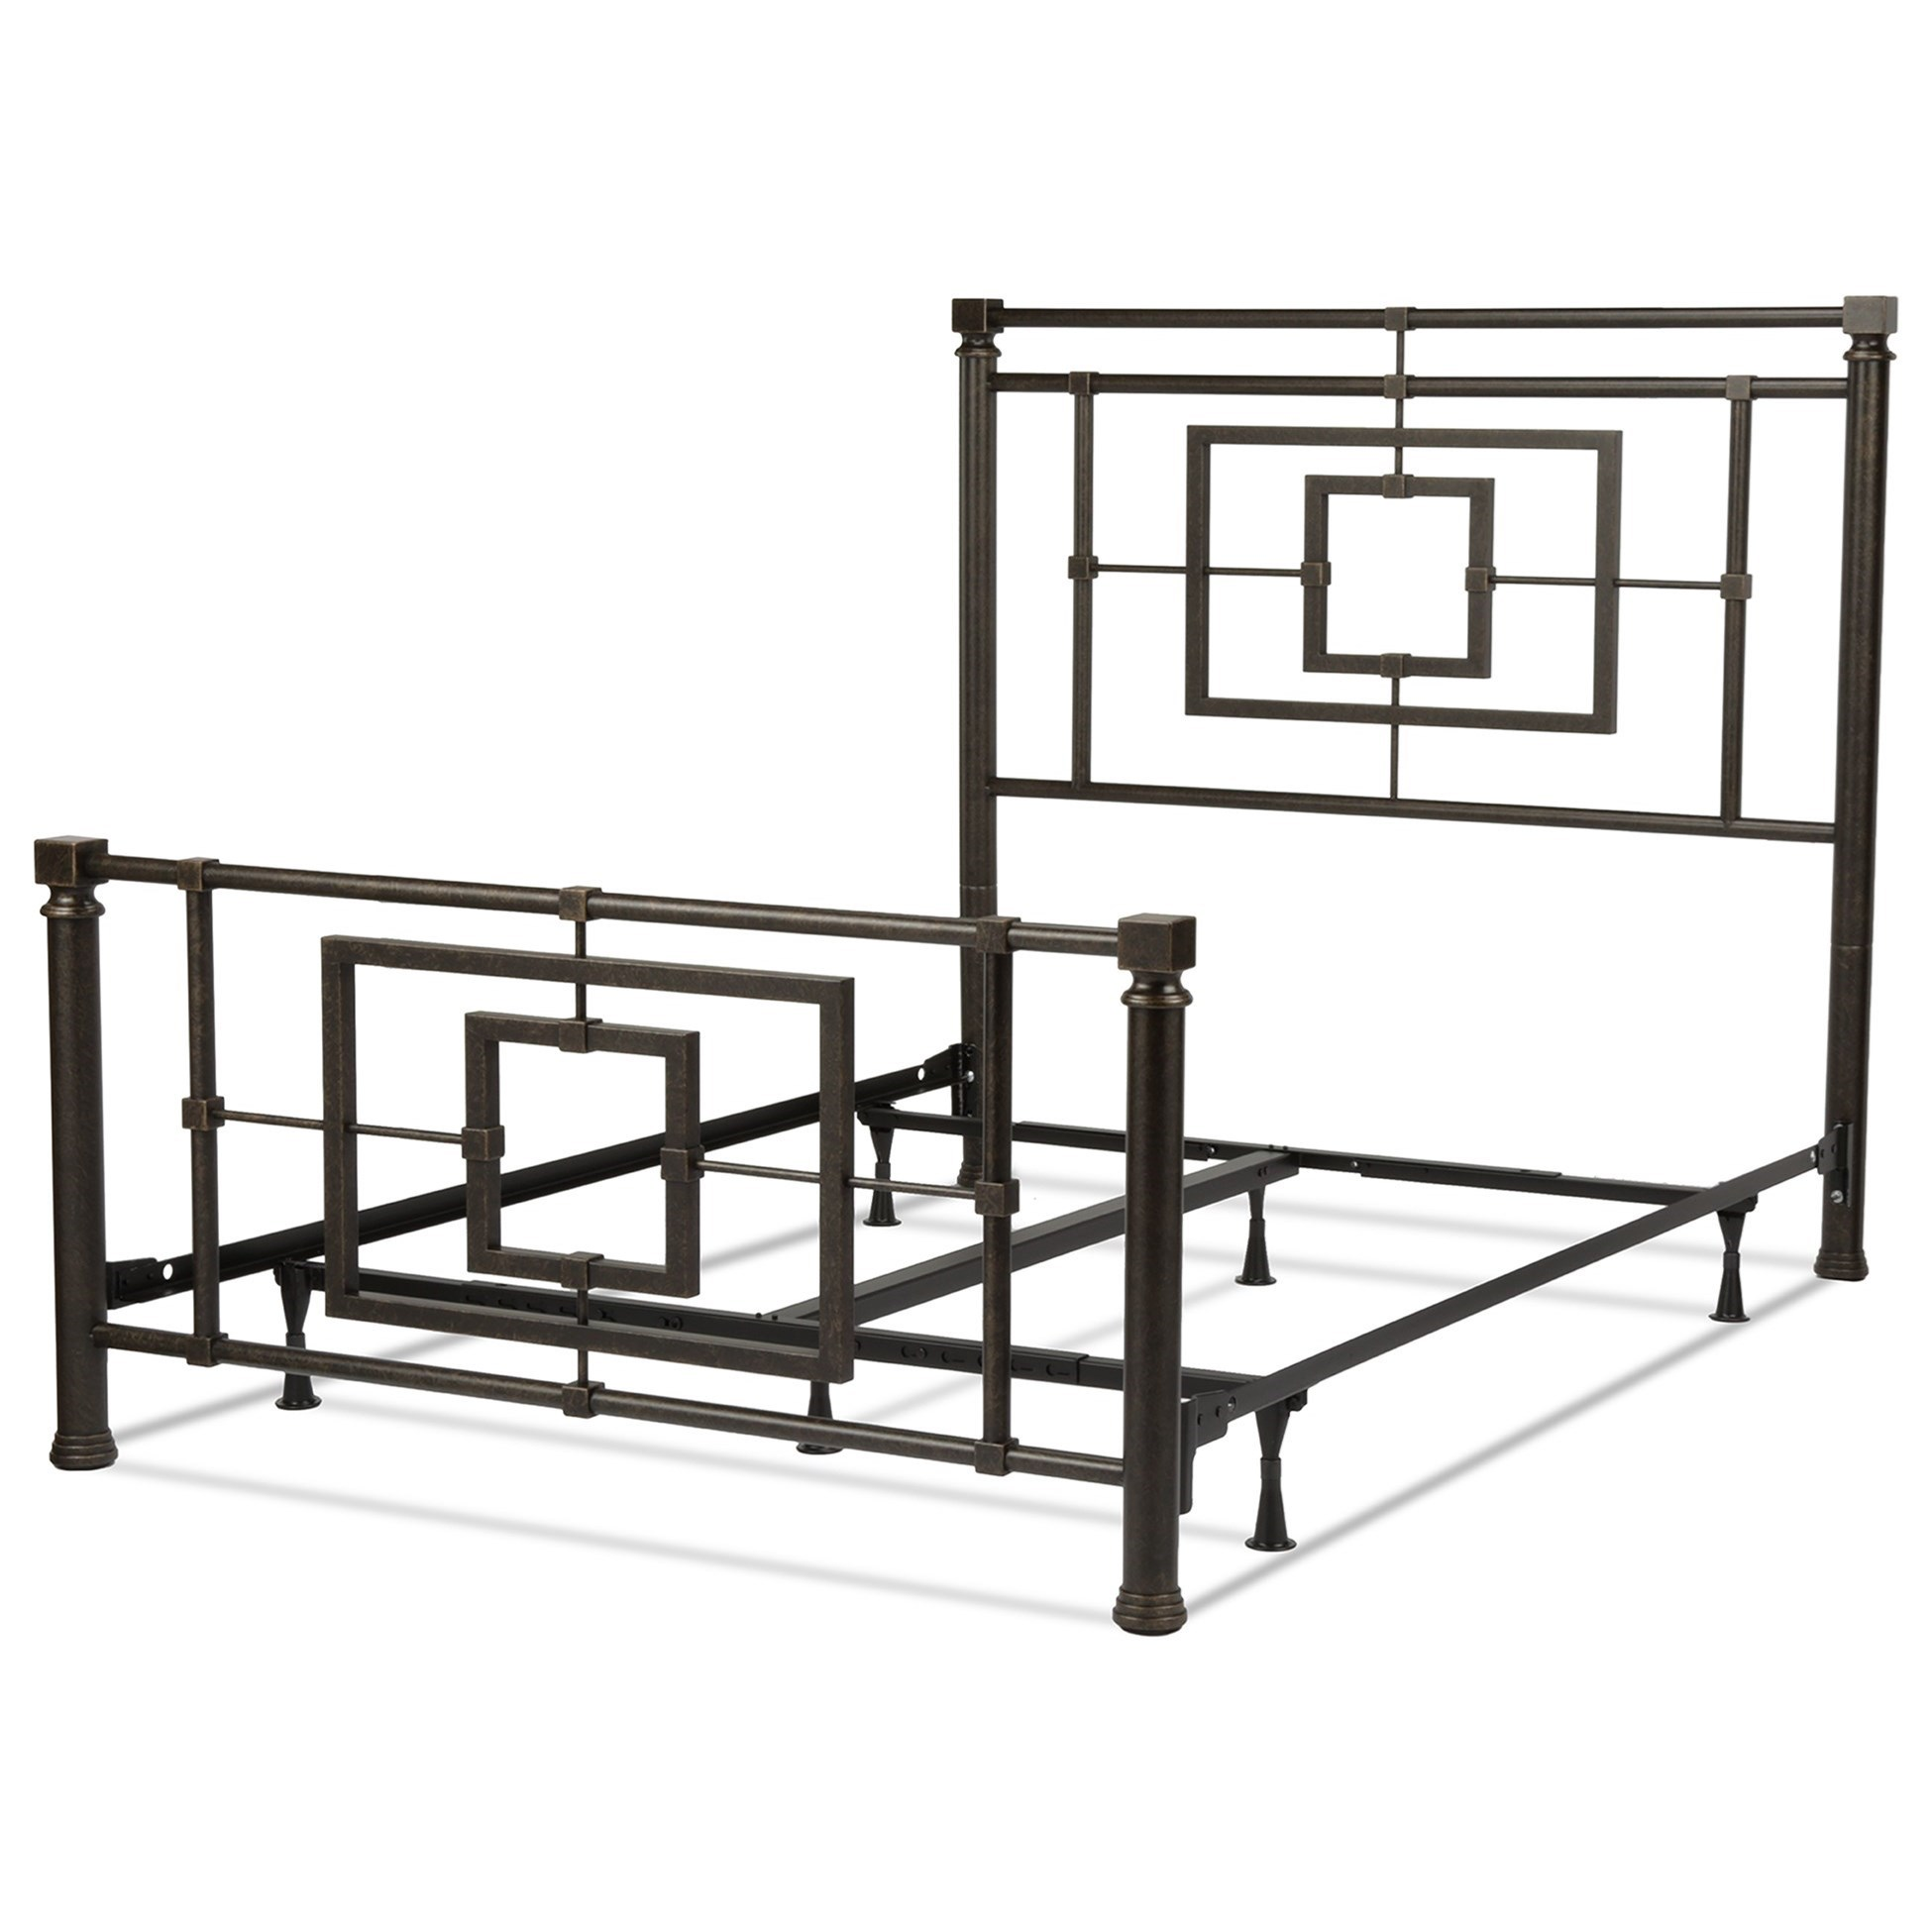 1980288397 as well 494927166 additionally English Vocabulary 01 Flash Cards besides Metal Bunk Bed Black Twin Top And Full Bottom Bunk Bed 4487bk also Dir Kids Baby furniture And Decorations children S Bookcase 0107368. on twin sofa bed mattress